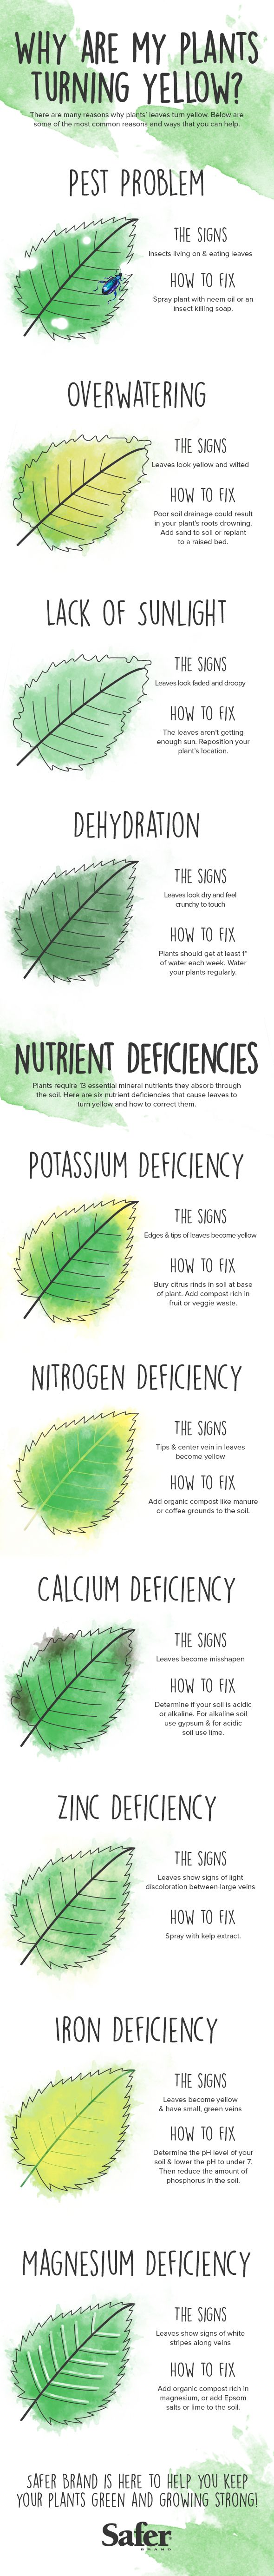 Why Are My Plants Turning Yellow? #infographic